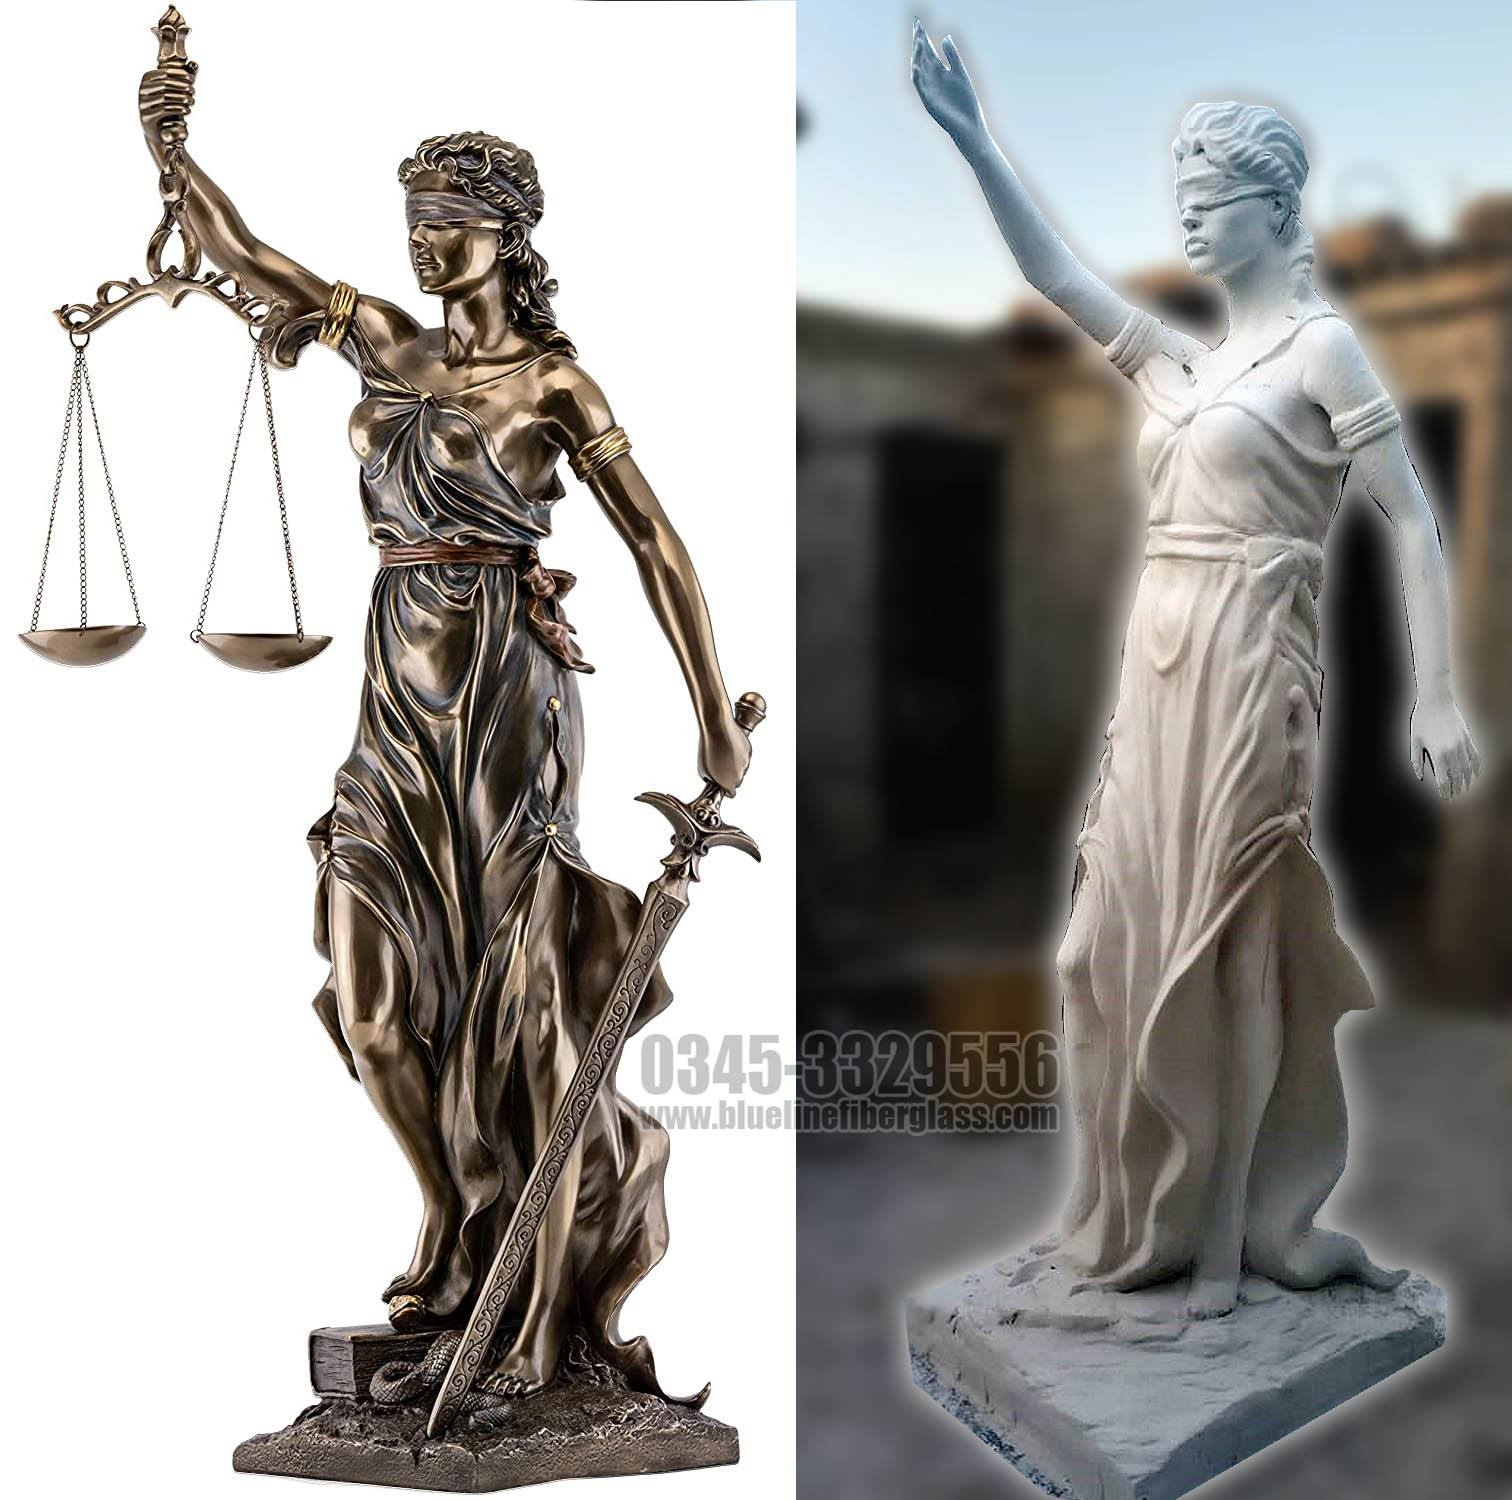 Creating Replica of Lady Justice